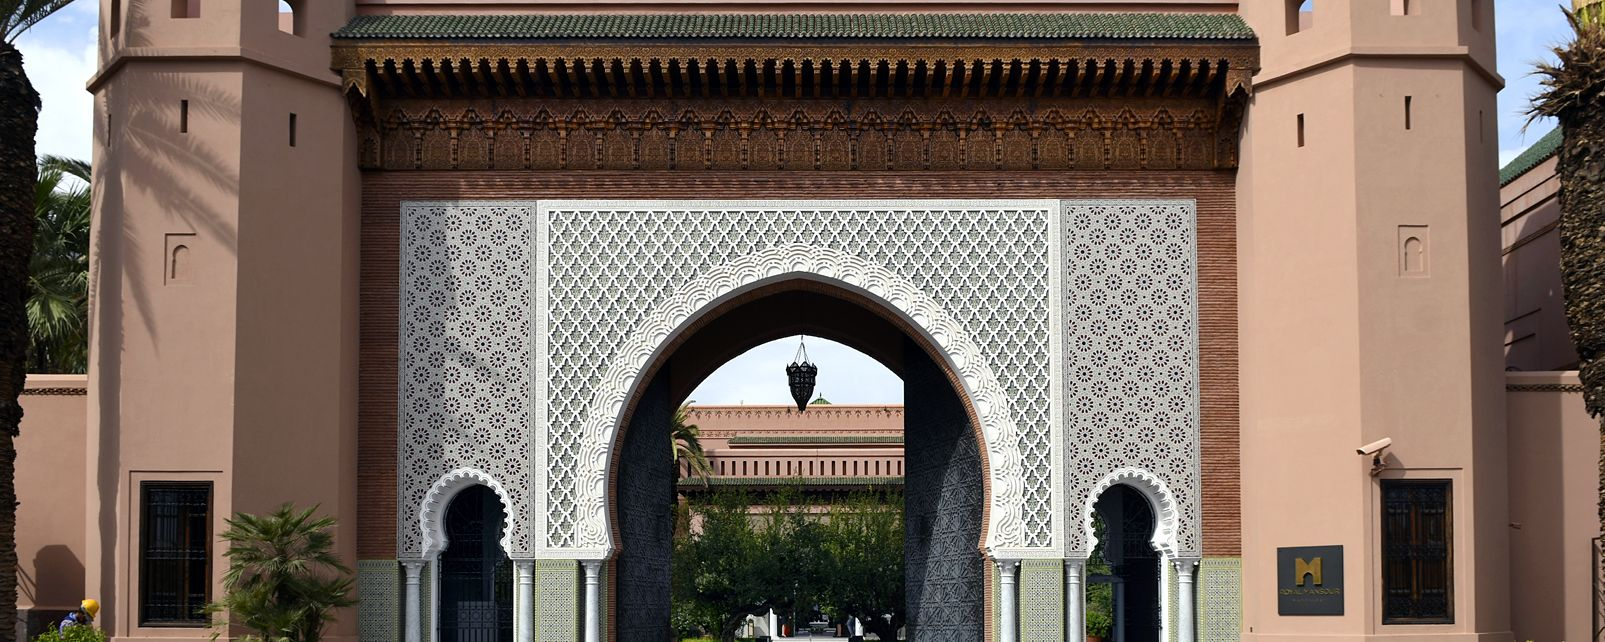 Hôtel Royal Mansour Marrakech